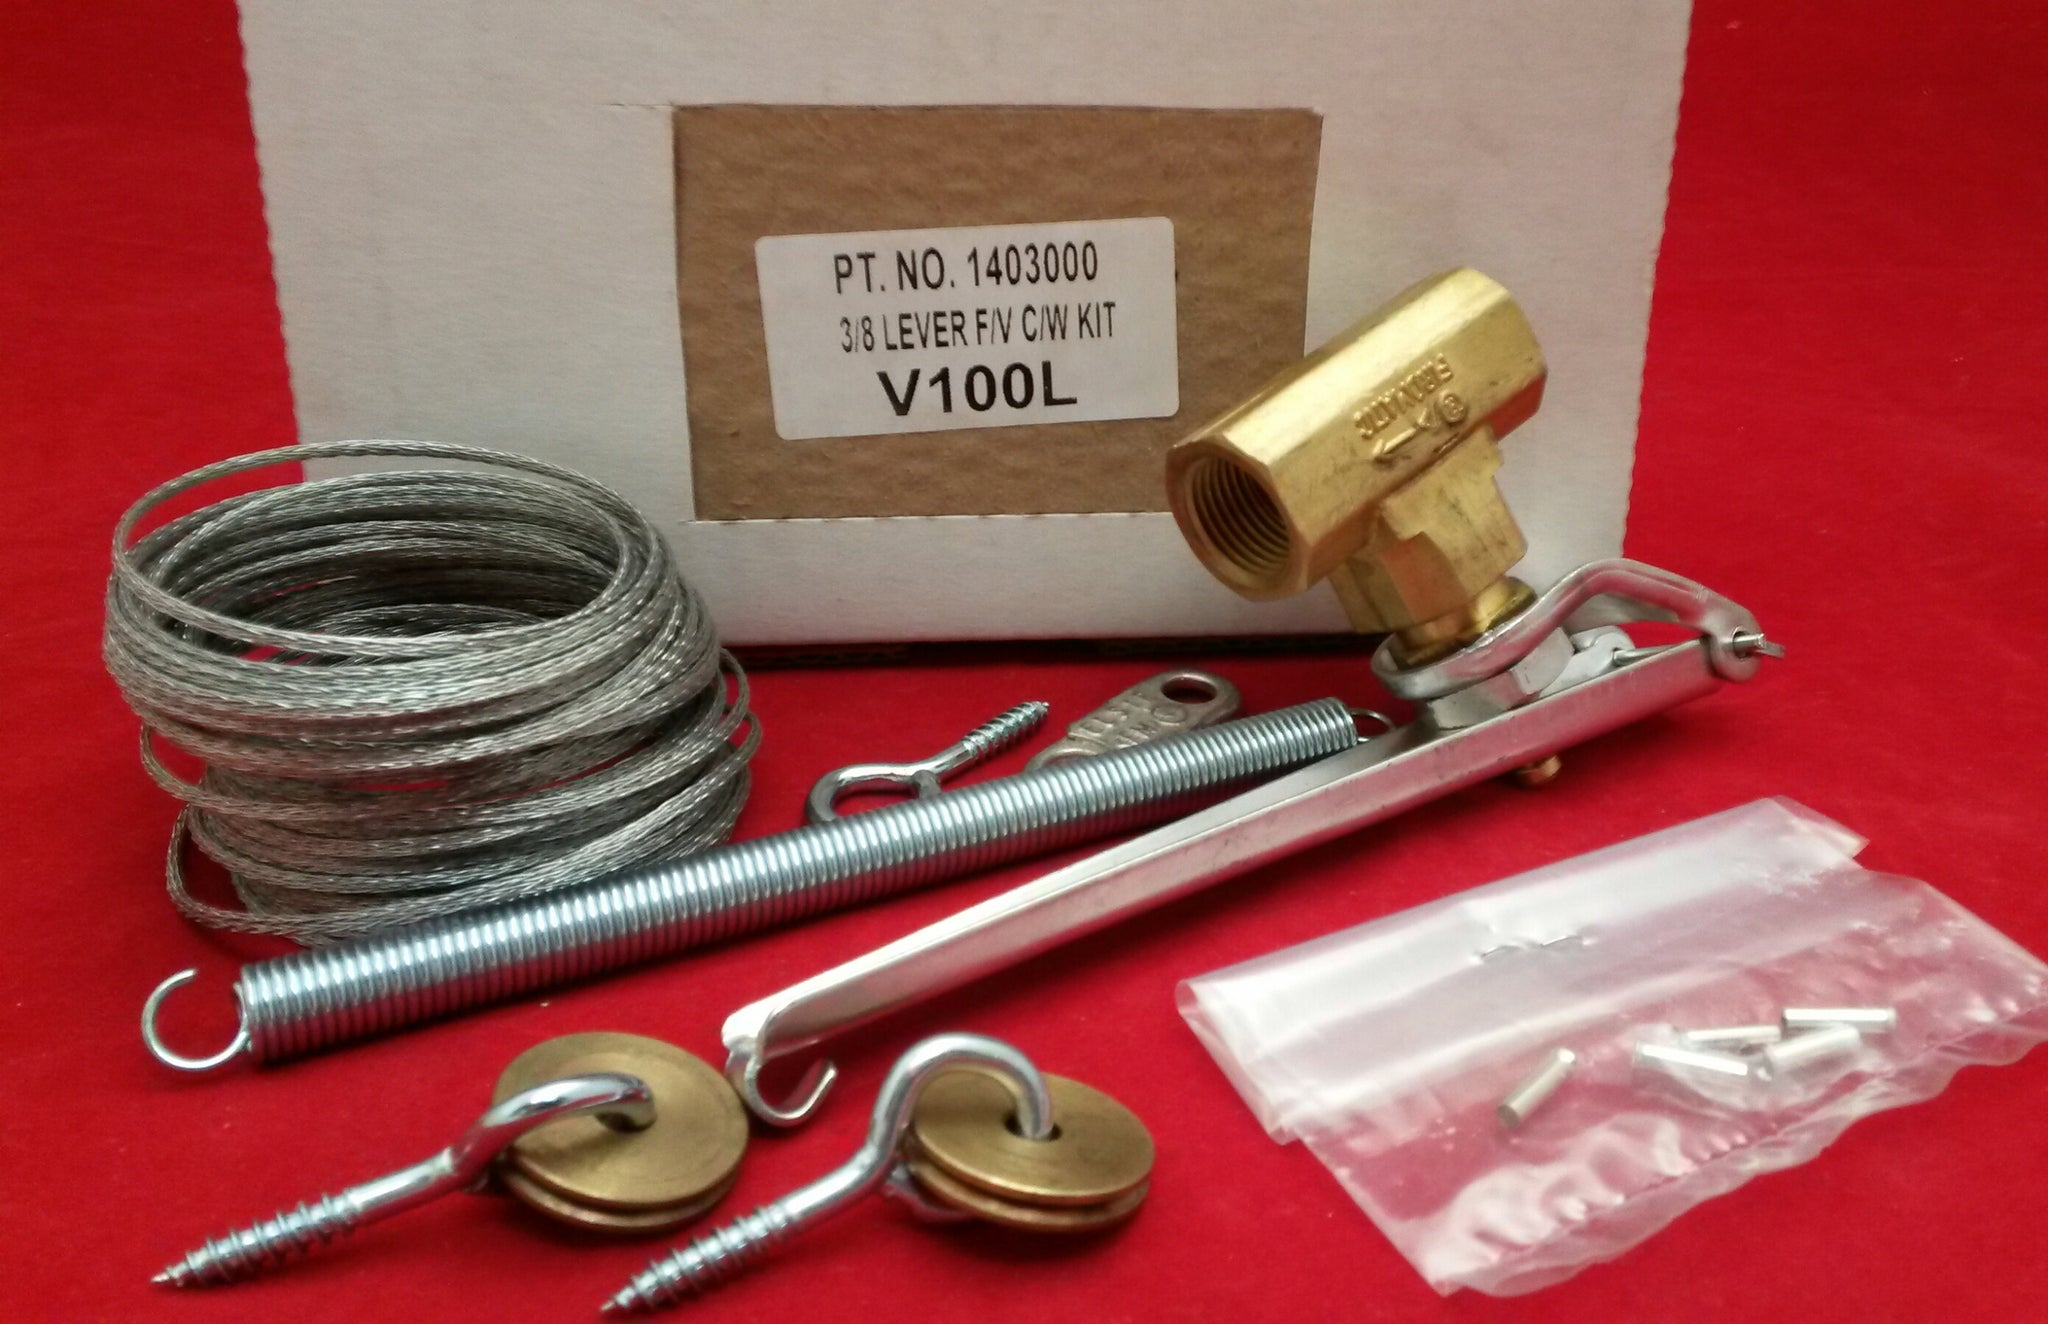 "3/8"" BSP Lever Action Fire Valve Kit c/w Kit V100L"